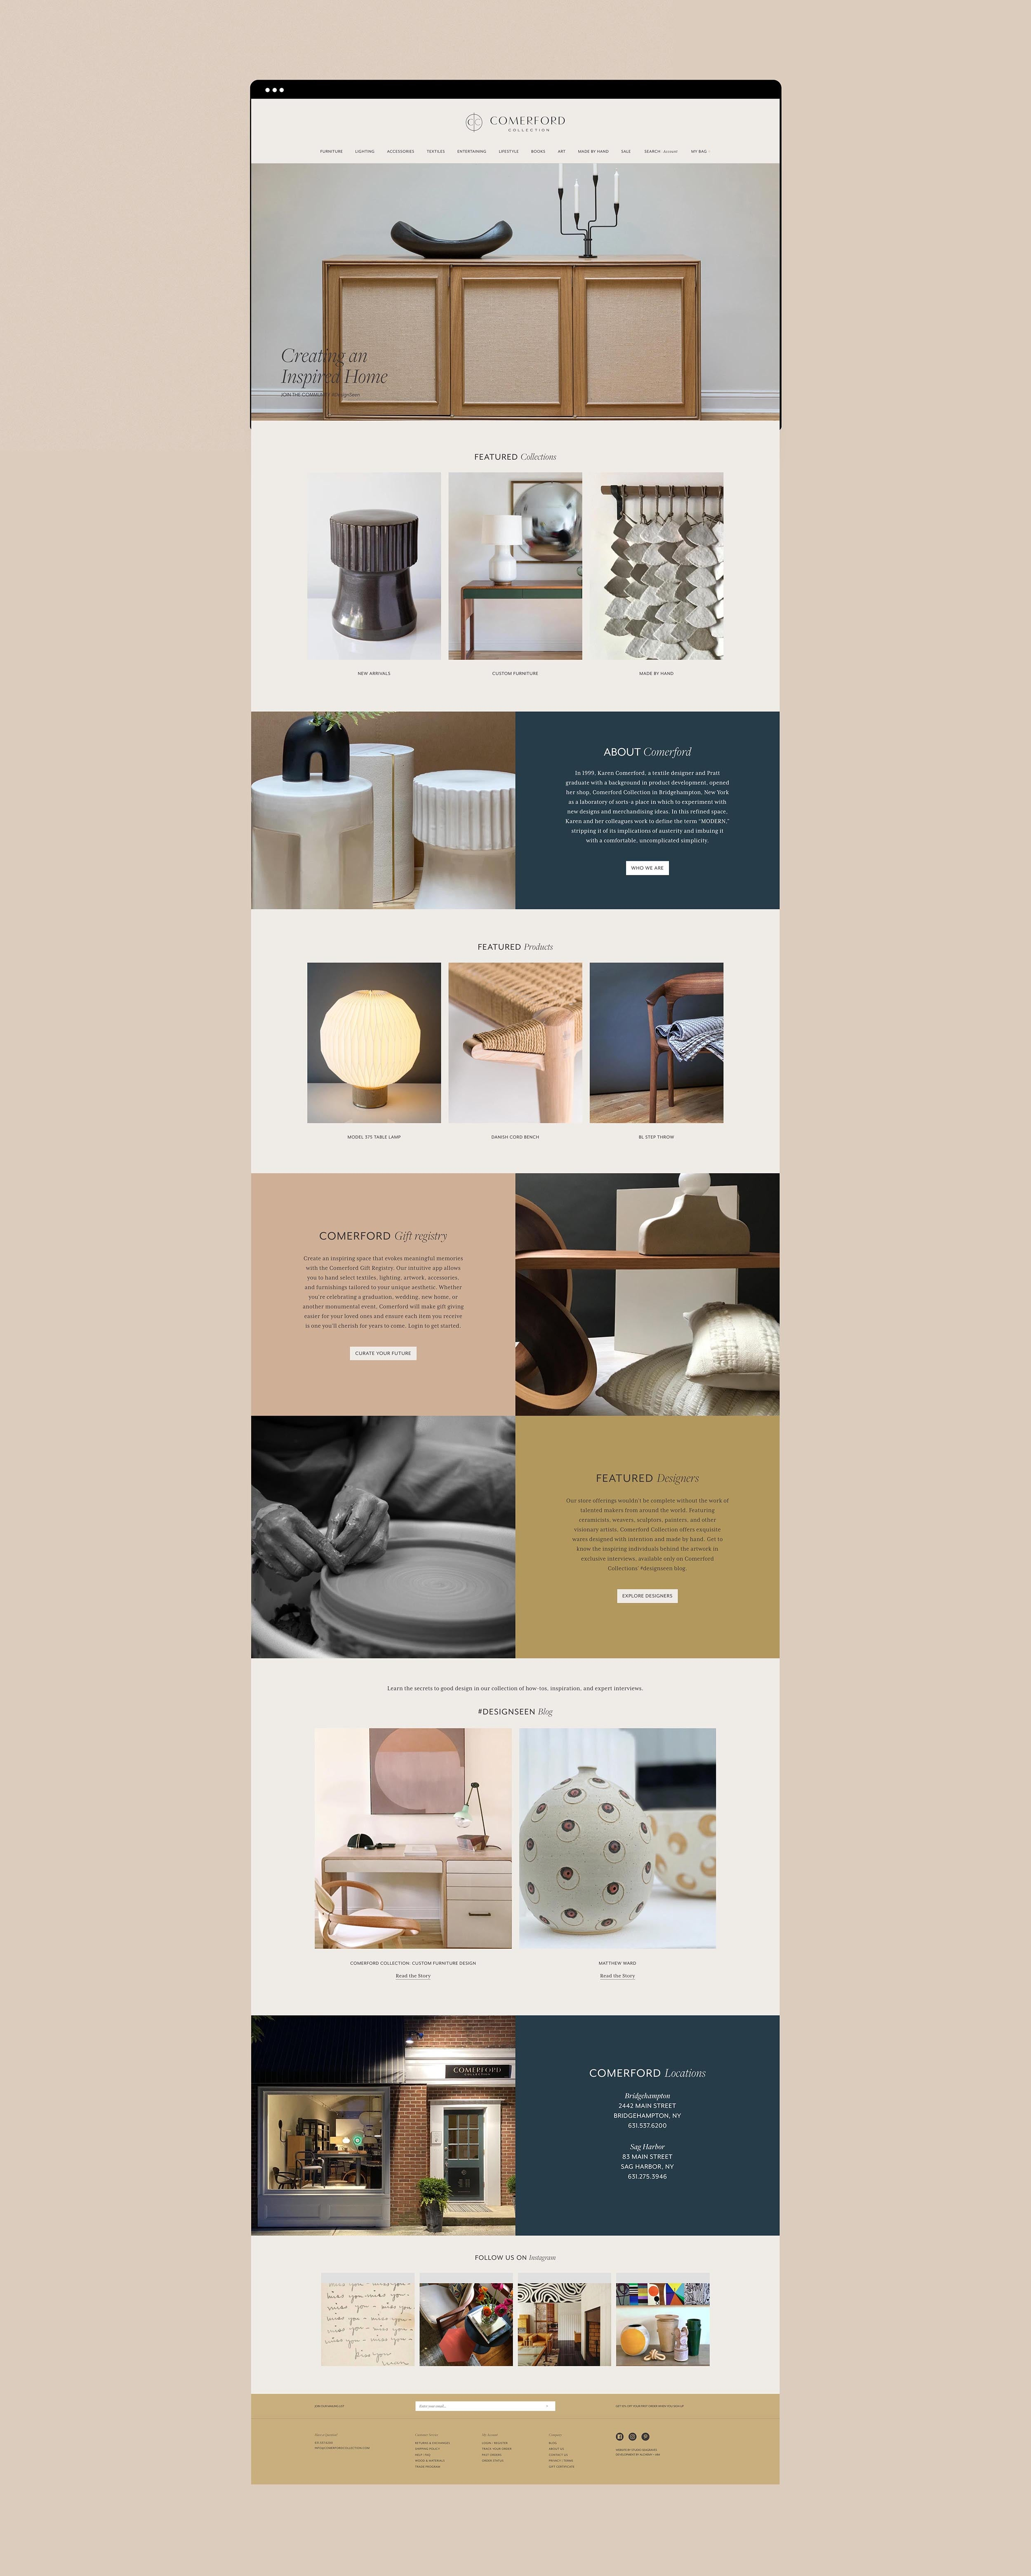 Comerford Collection Website and Branding by Studio Seagraves